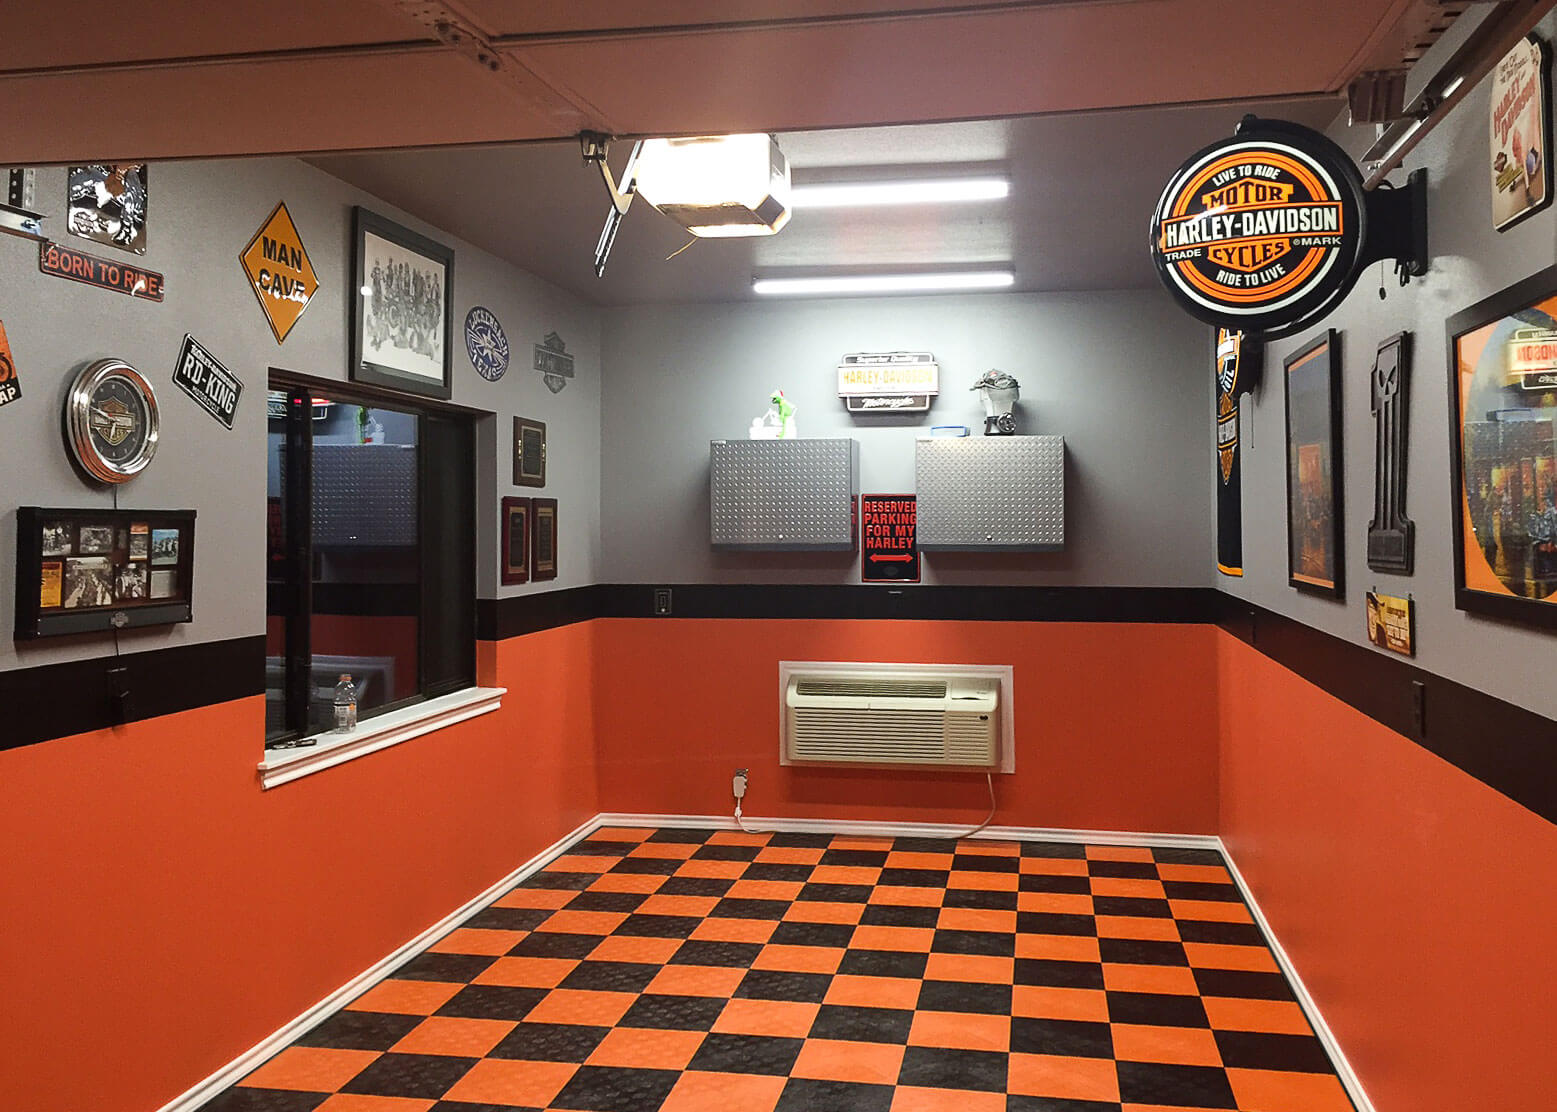 harley garage ideas - Harley Davidson garage flooring